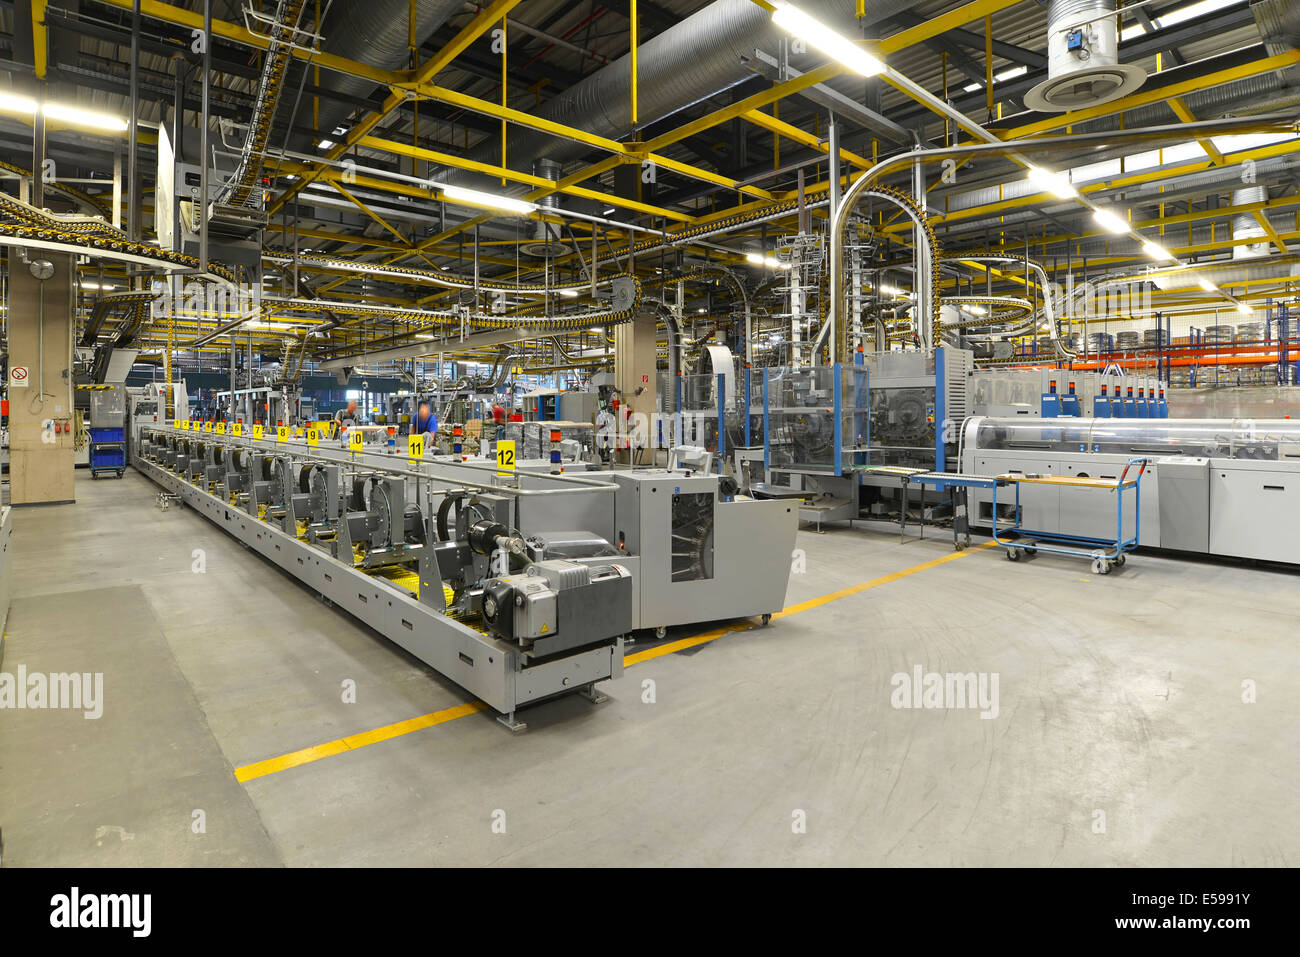 Modern Industrial Machines In A Printing Shop